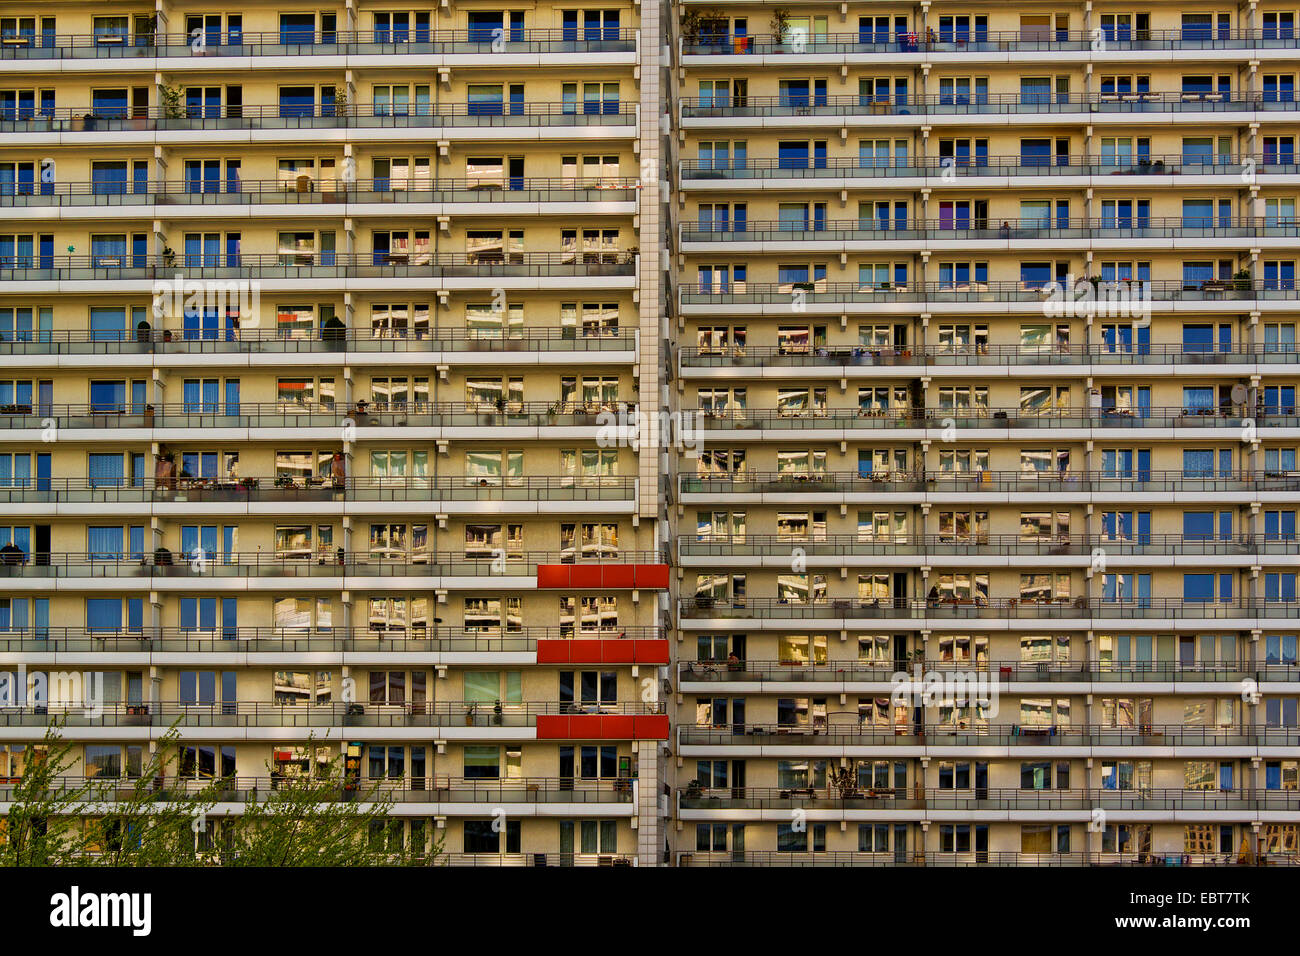 fassade of one of the eight residental towers of the 'Komplex Leipziger Strasse', Germany, Berlin - Stock Image